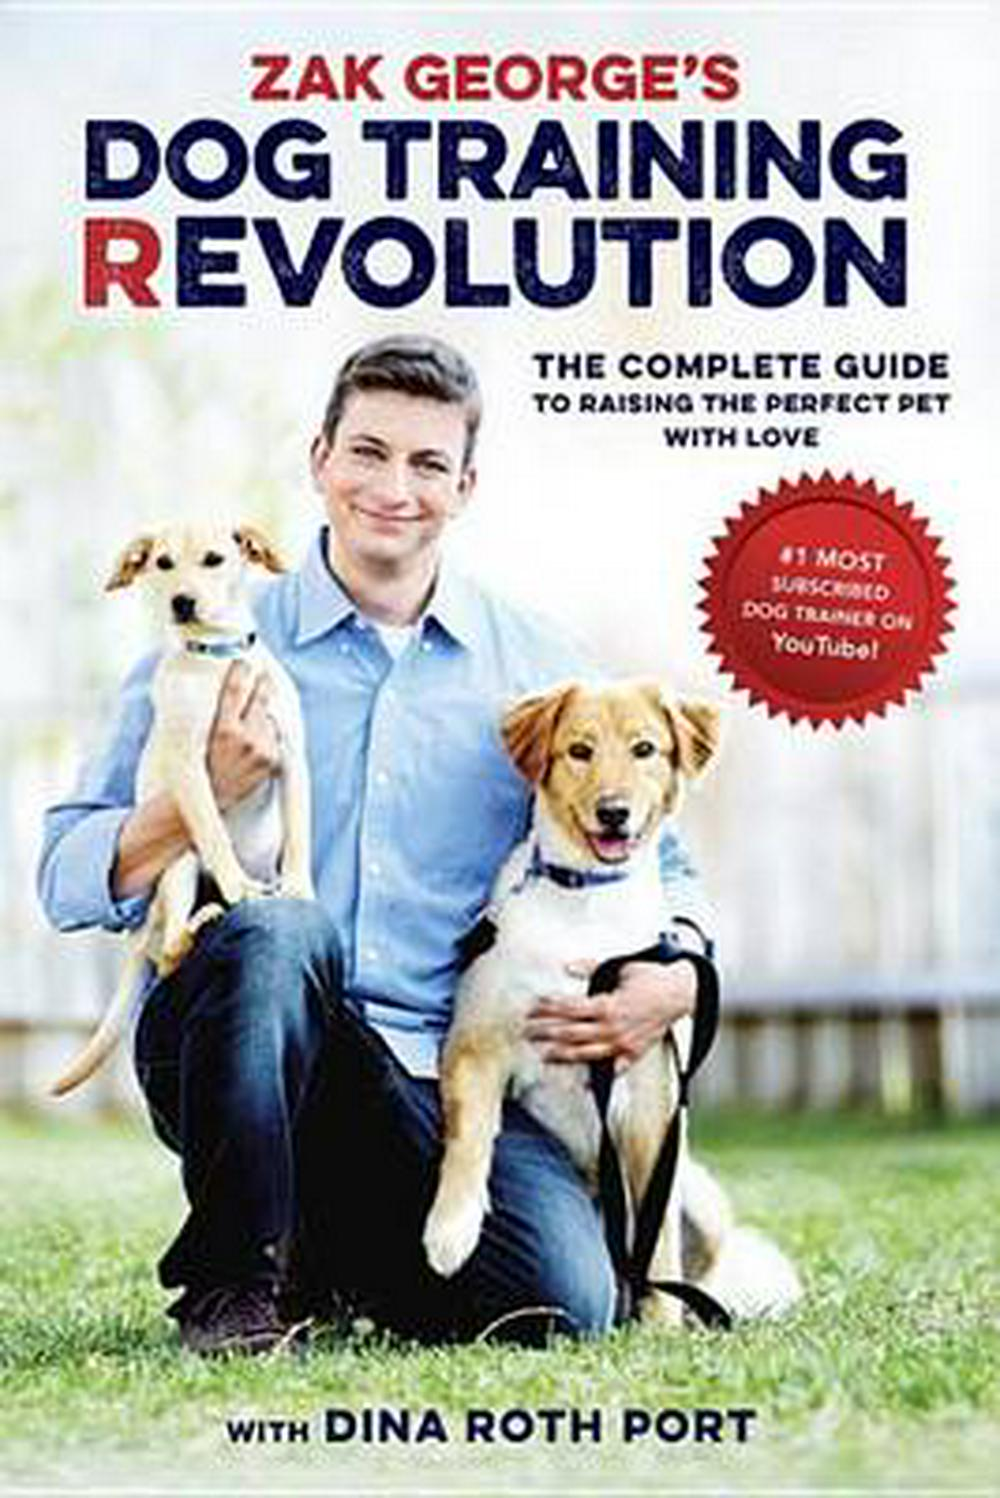 Dog Training RevolutionRaising the Perfect Pet with Love by Zak George,Dina Roth Port, ISBN: 9781607748915